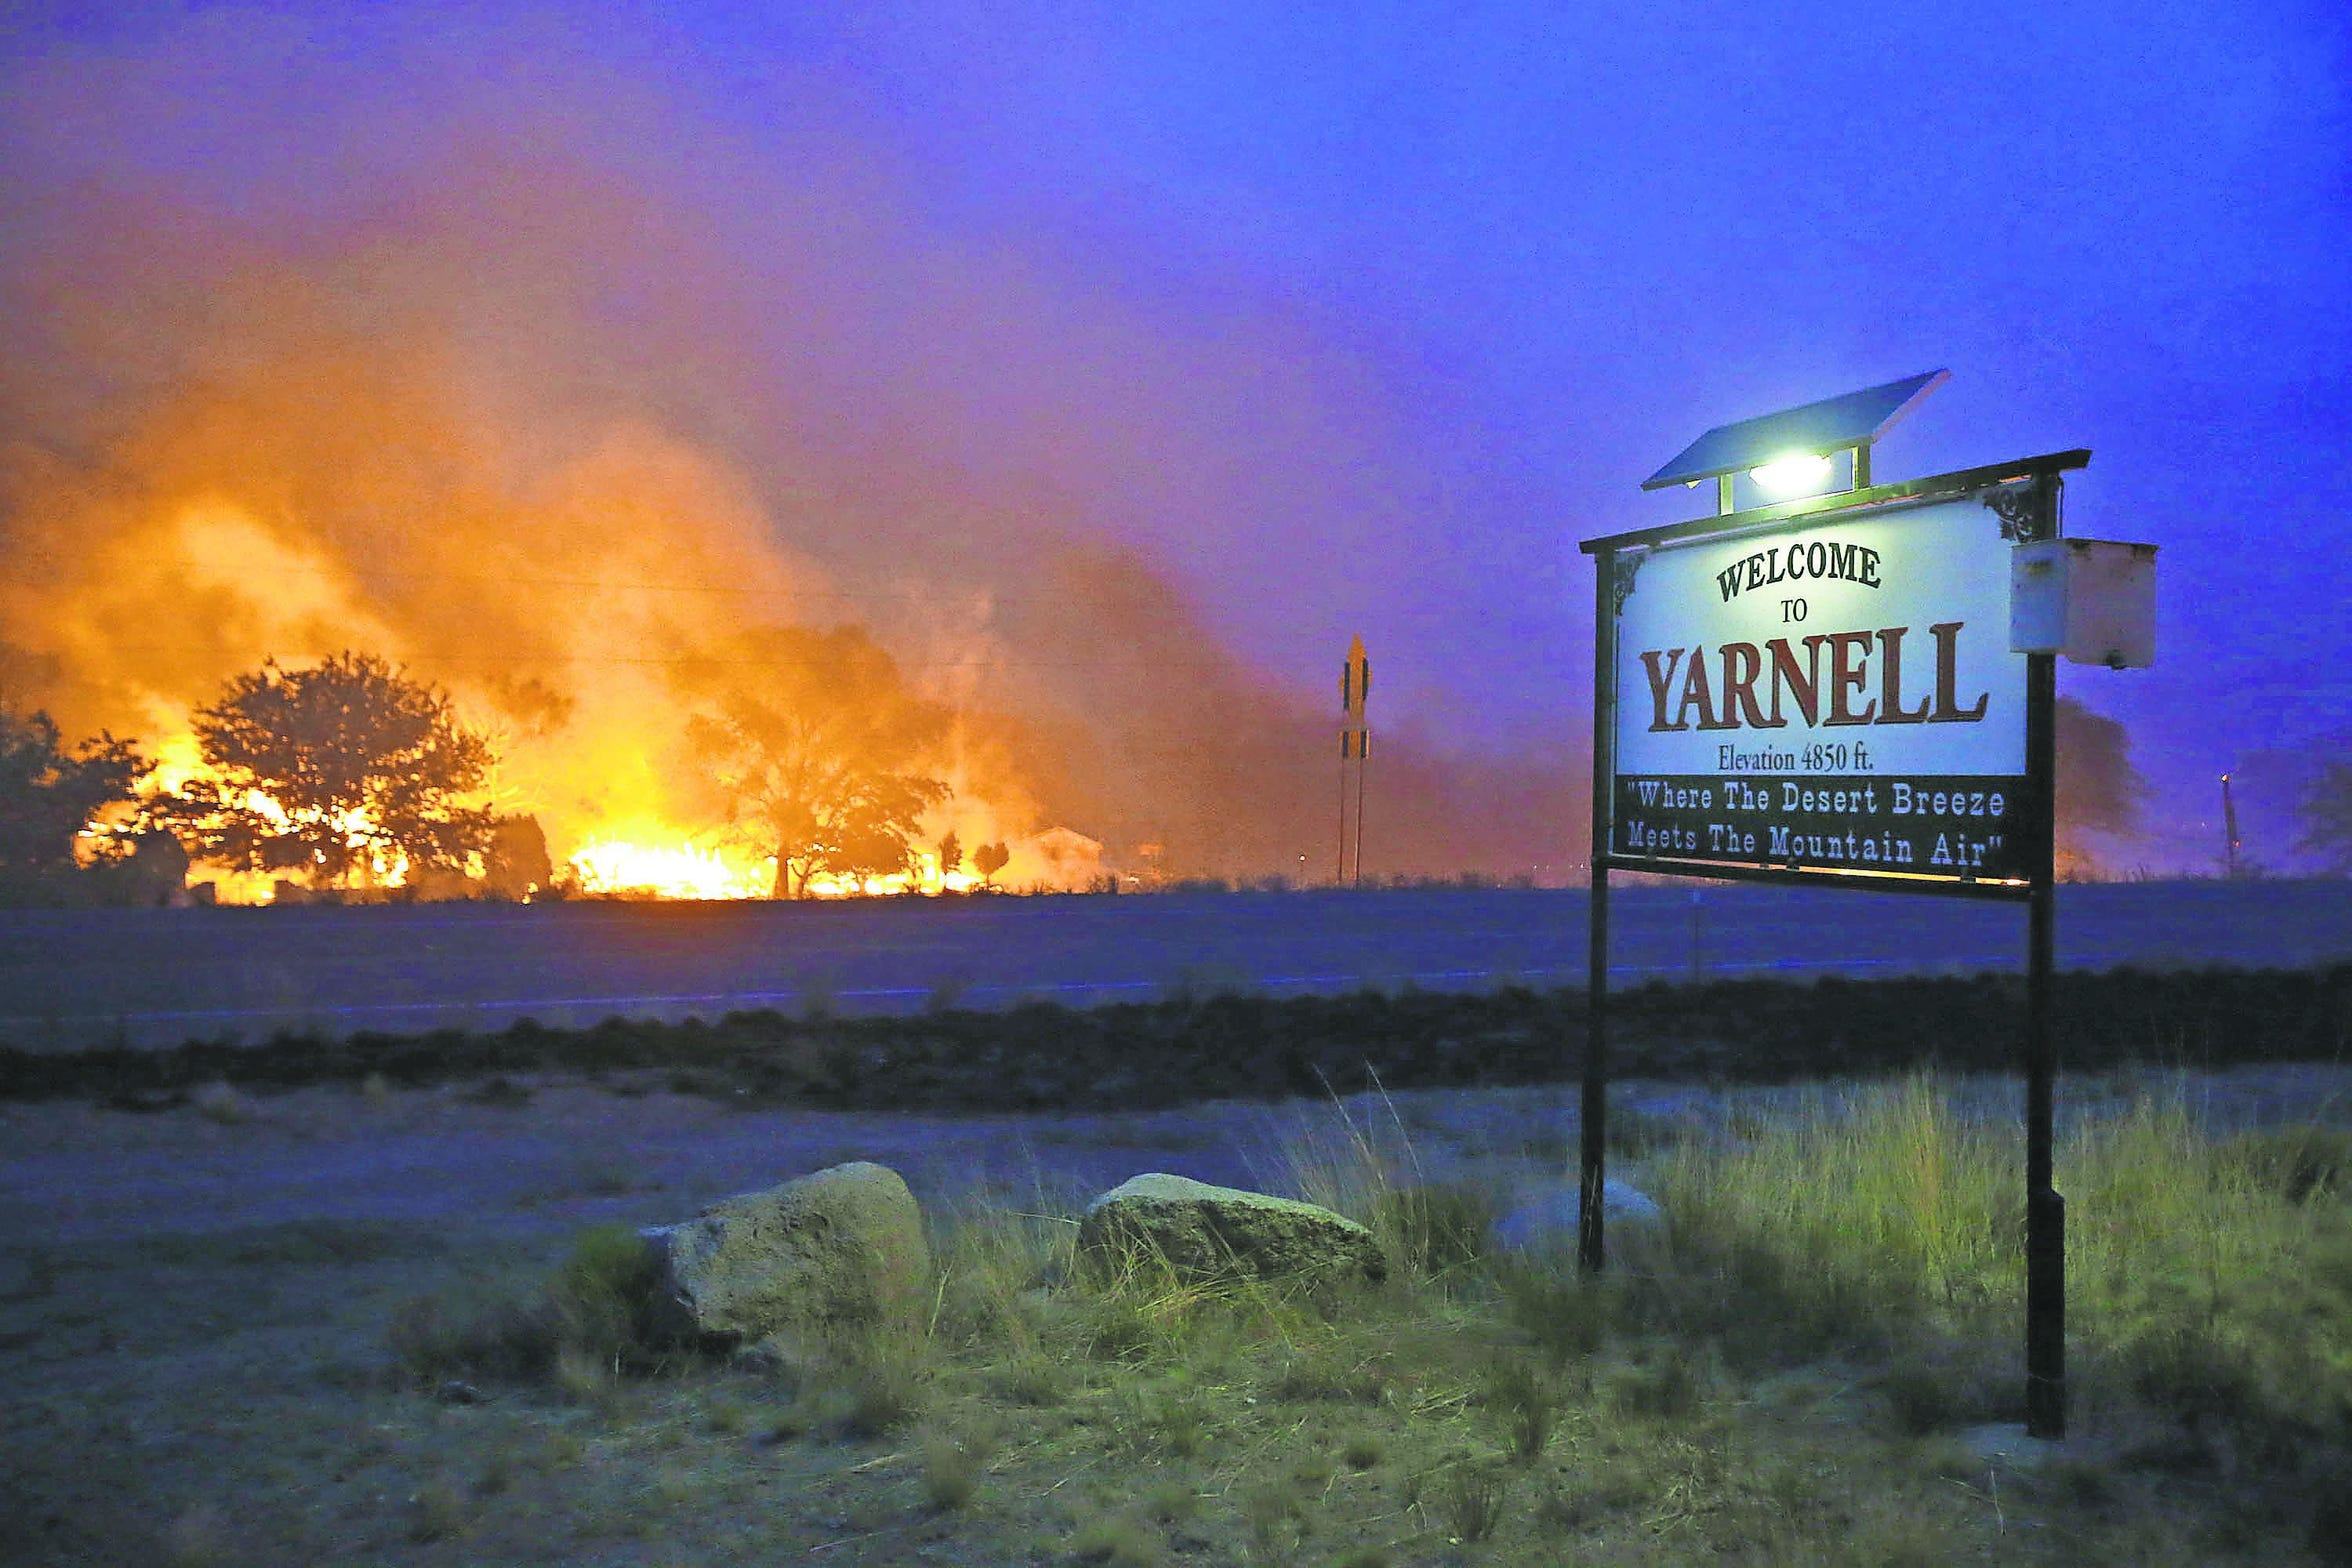 The Yarnell Hill Fire was the deadliest wildfire in Arizona. Nineteen firefighters in the Granite Mountain Hotshots were killed.